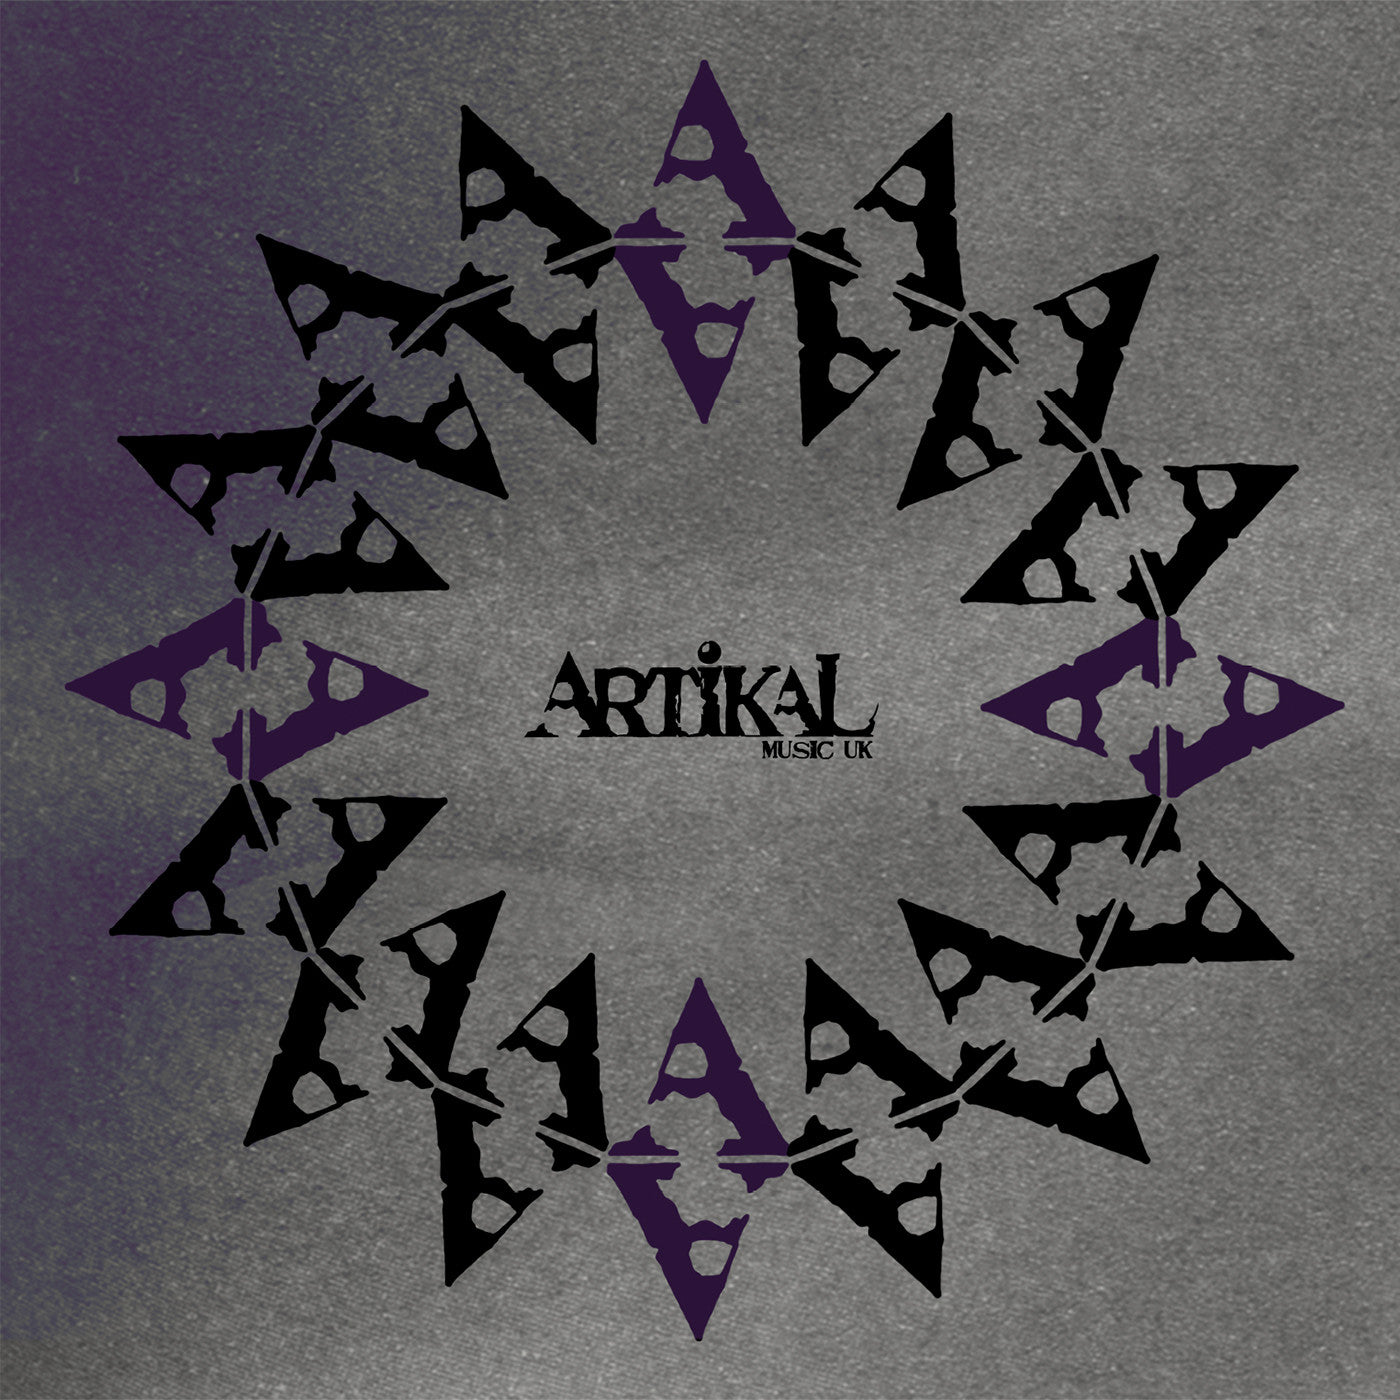 Artikal - The Compilation (Vinyl Album Sampler 1) - Unearthed Sounds